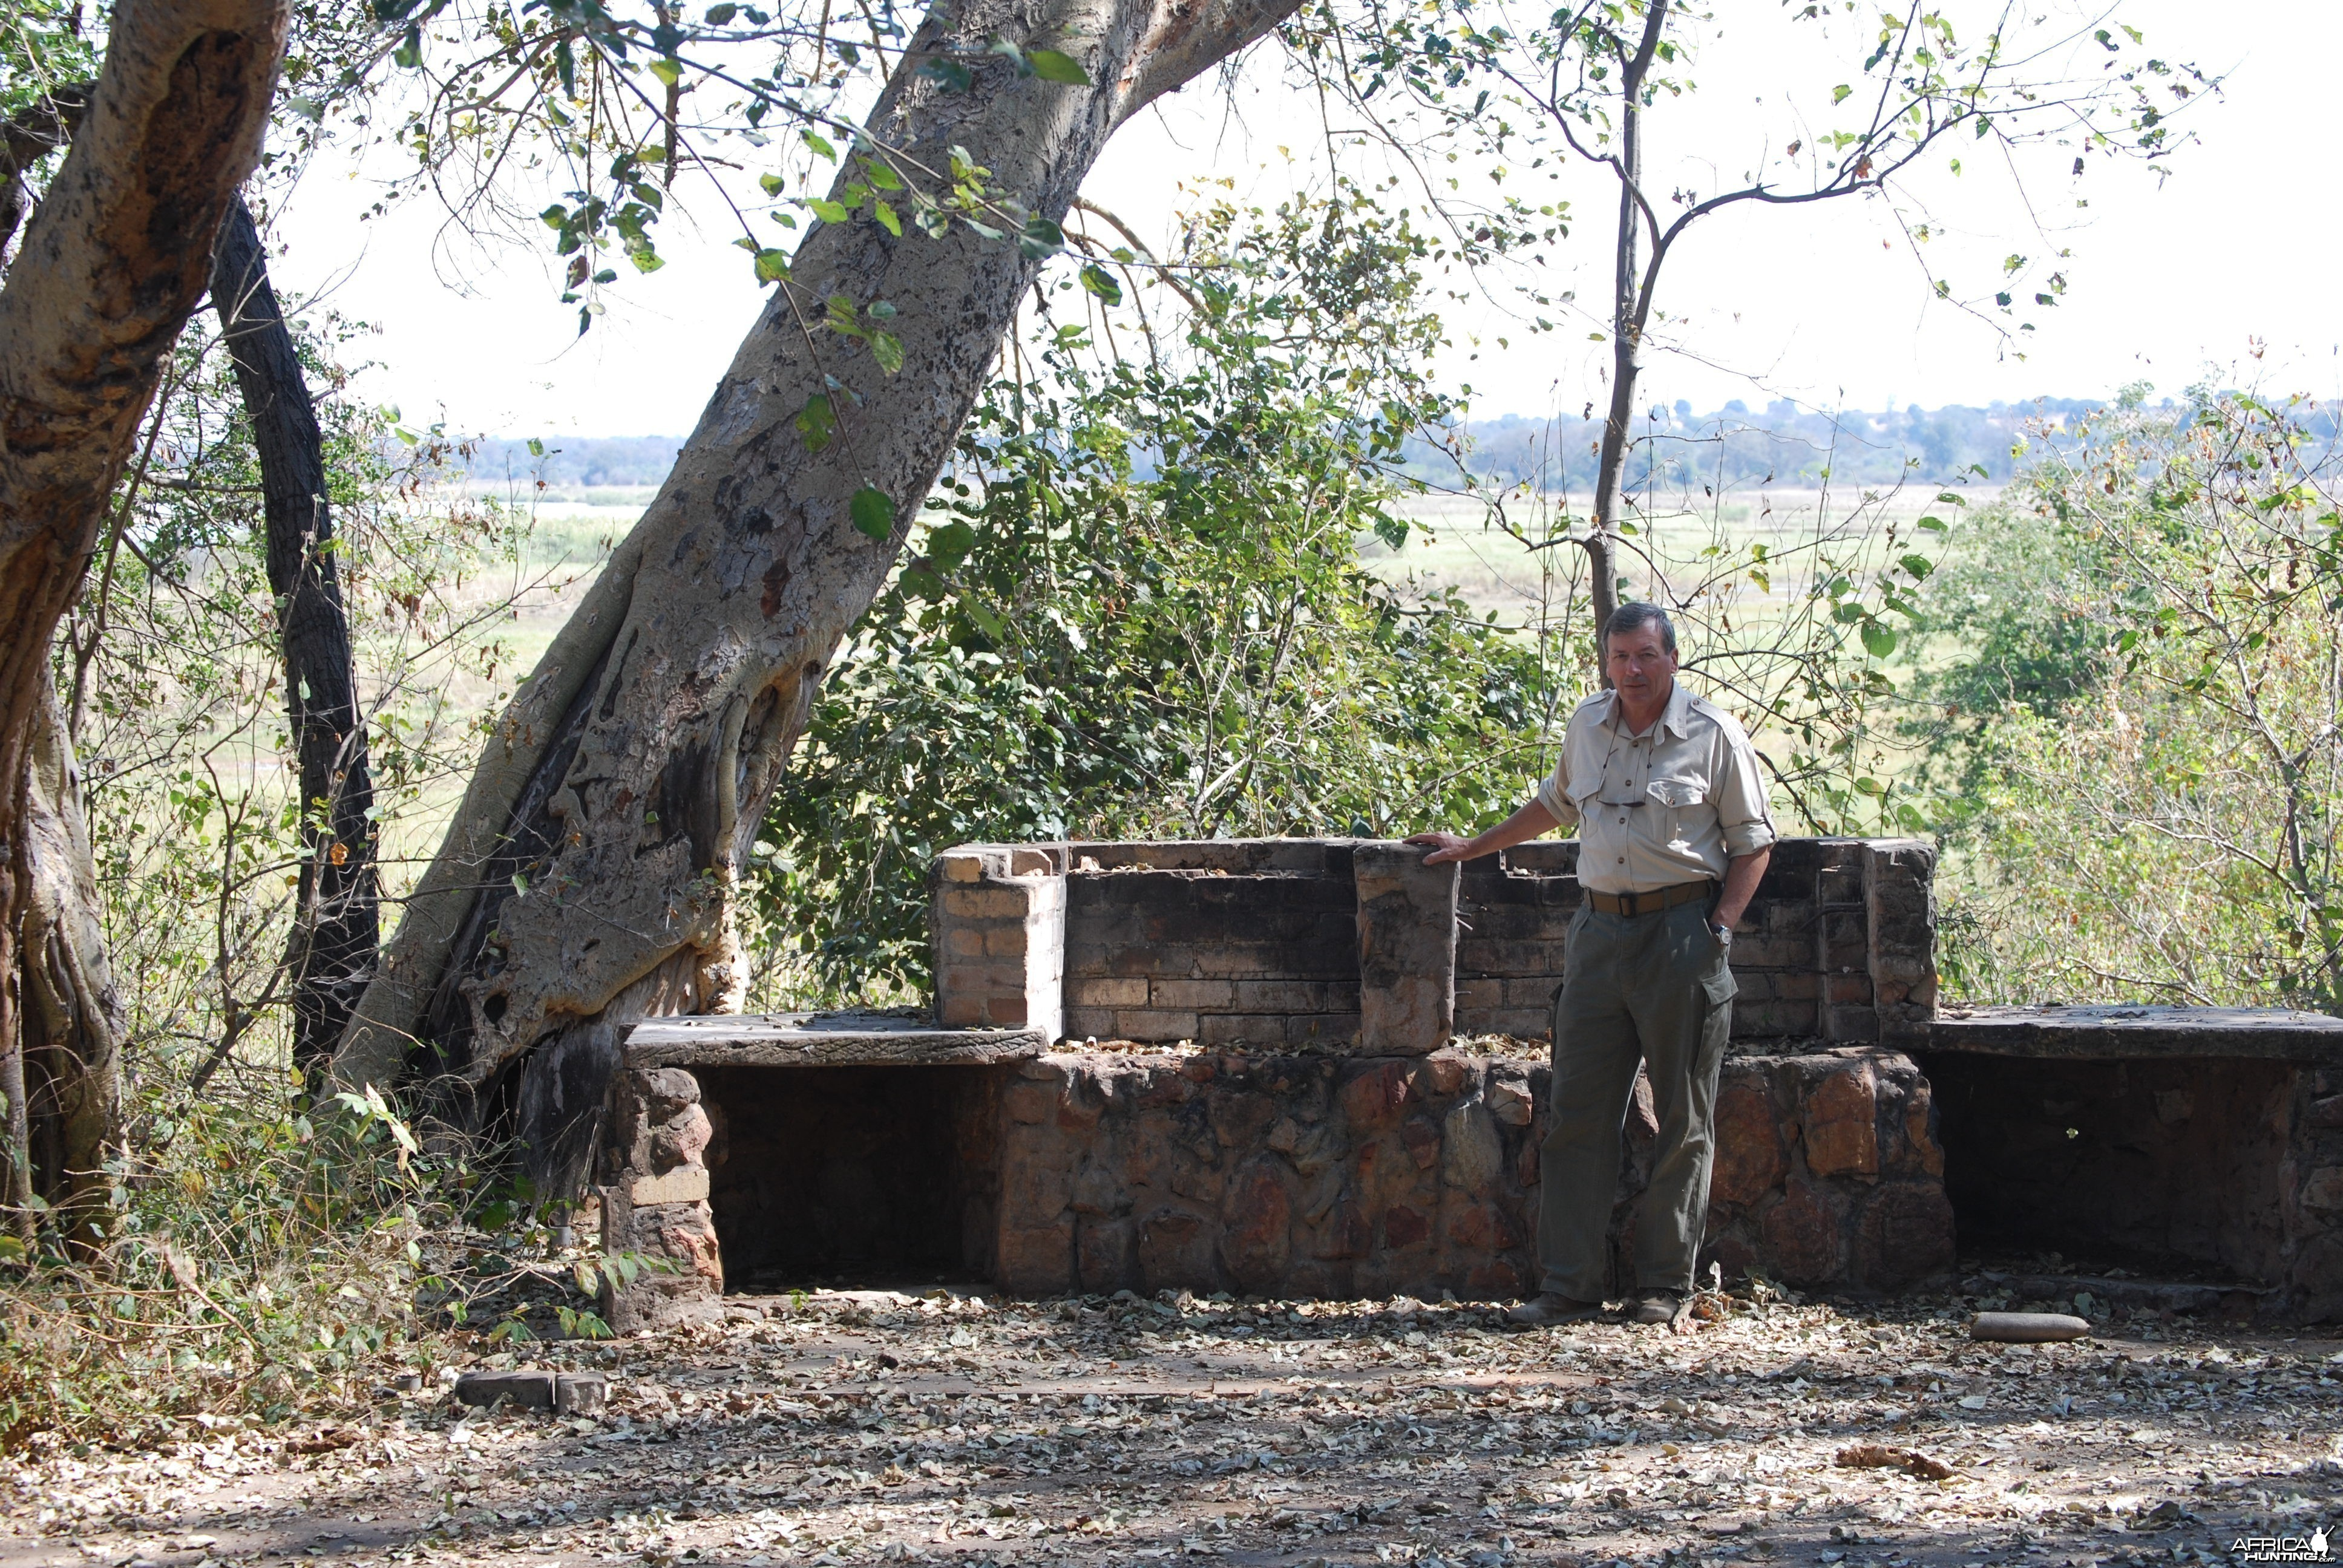 Remains of Jan Breytenbach's Quarters 32 Battalion